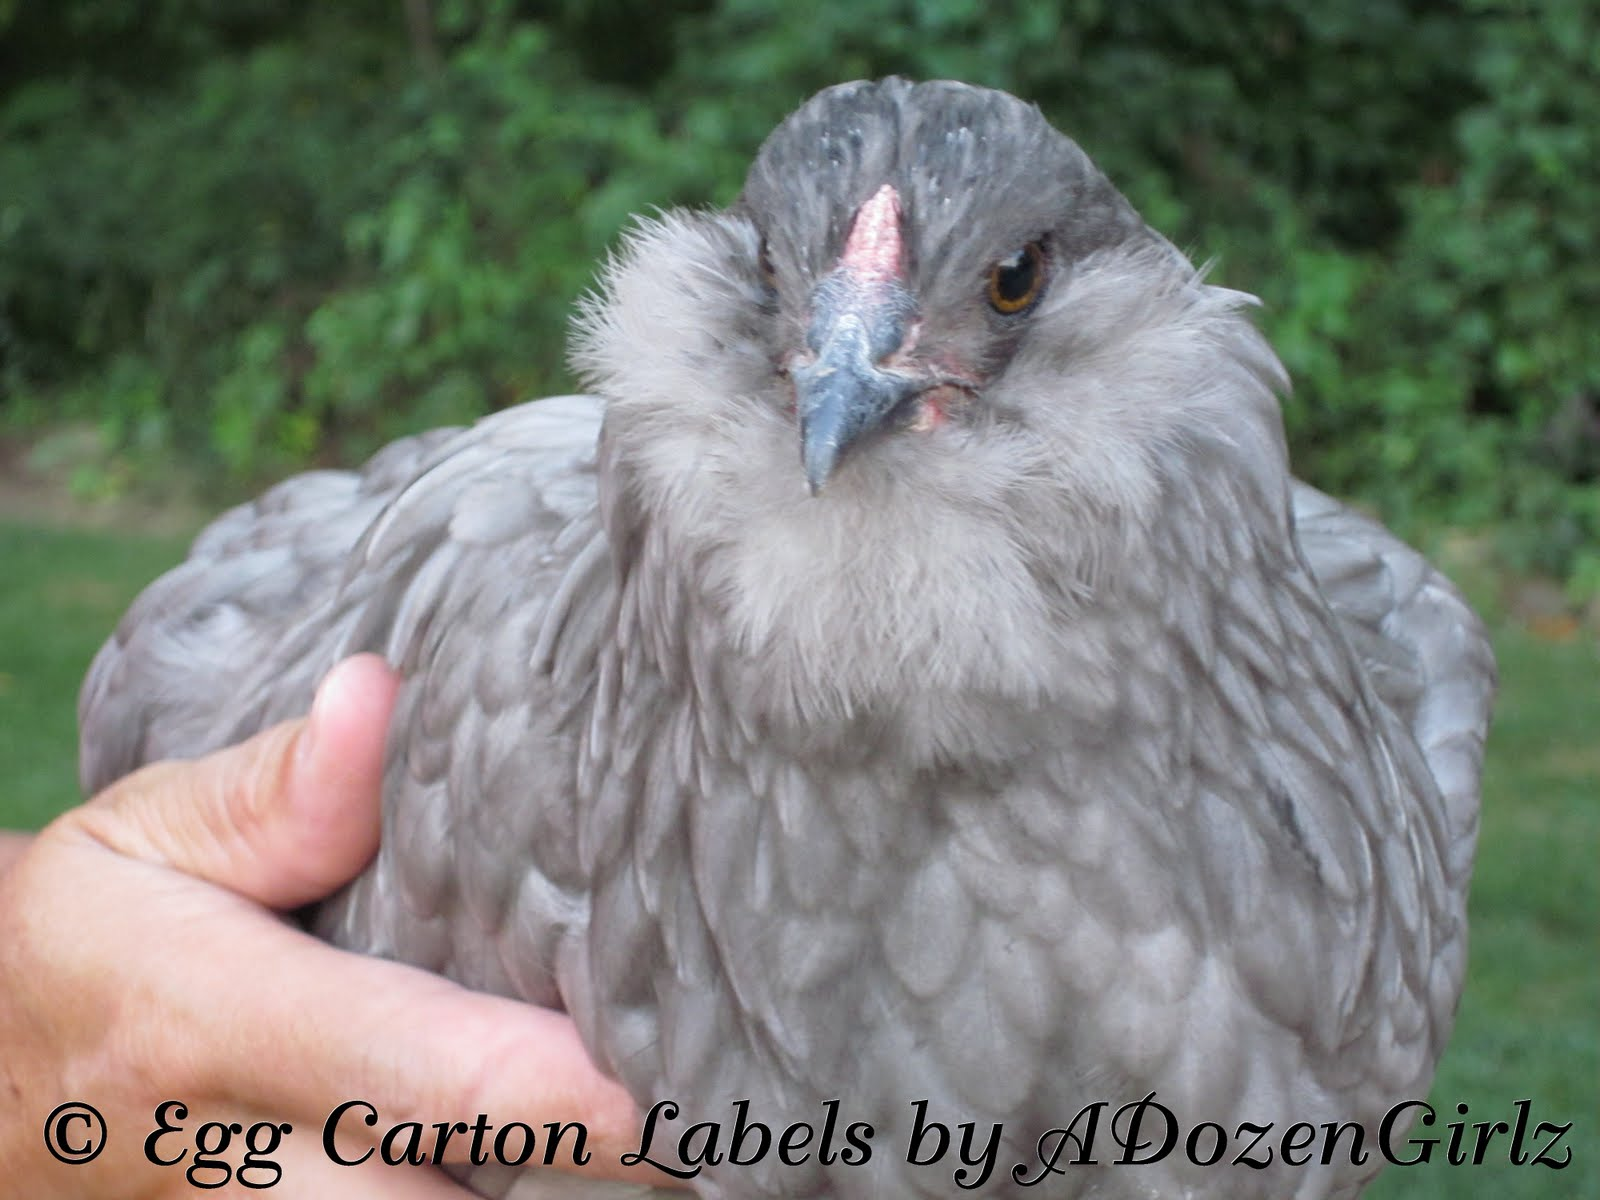 http://www.araucana.net/images/ACA_Images/Araucana_Alan_Stanford_Article.pdf